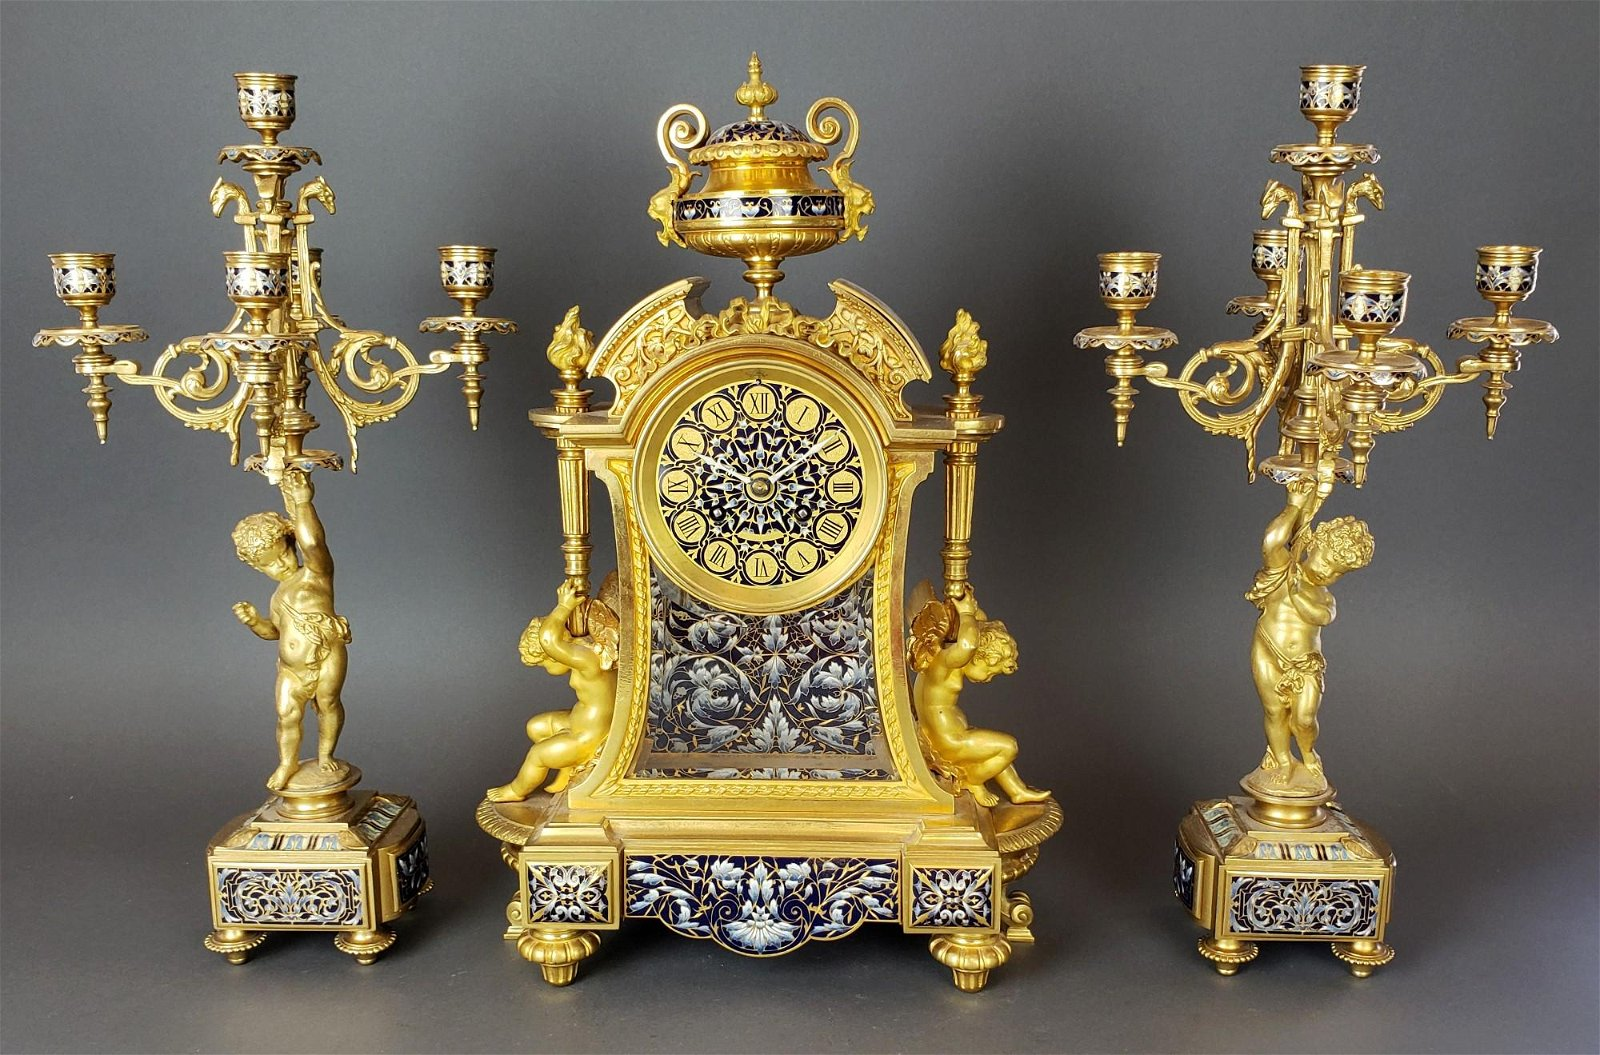 Exquisite French Champleve Enamel & Bronze Clockset,